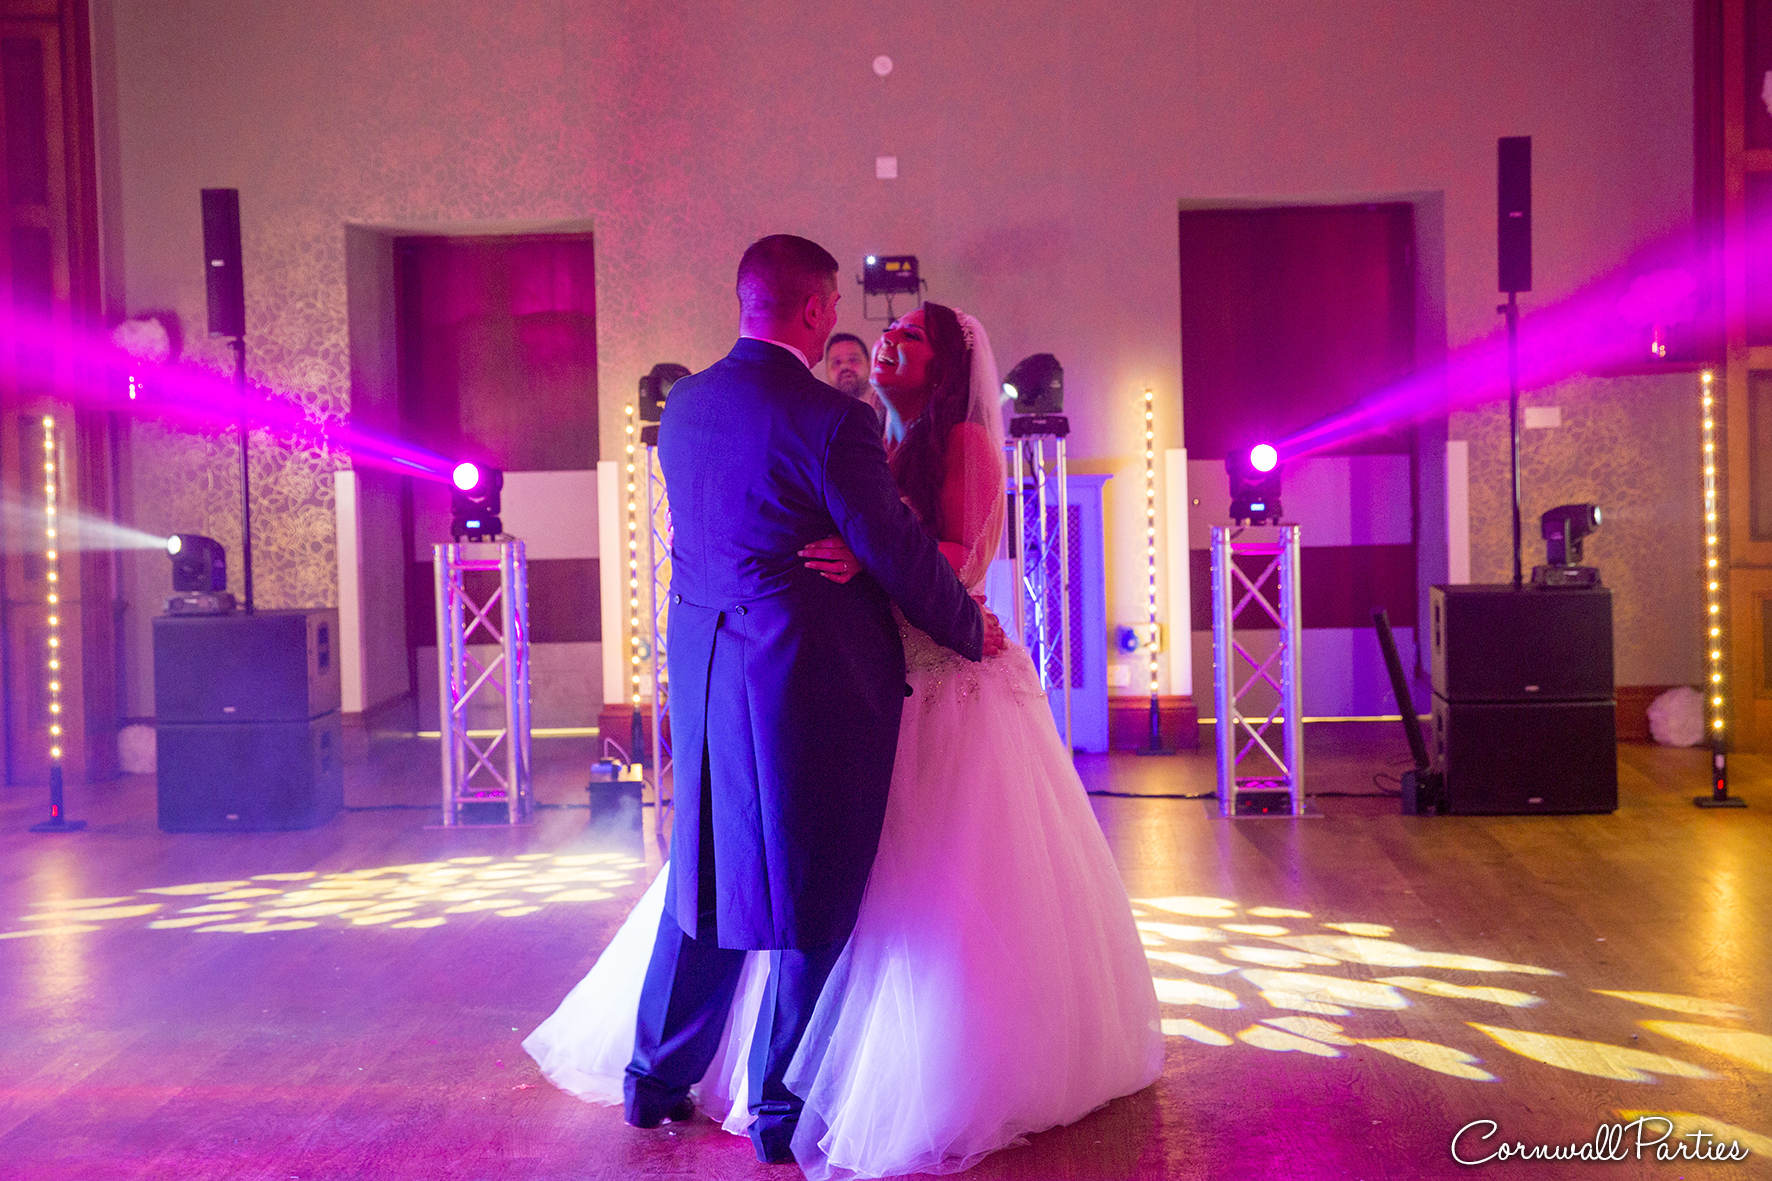 cornwall wedding disco dj photographer 40